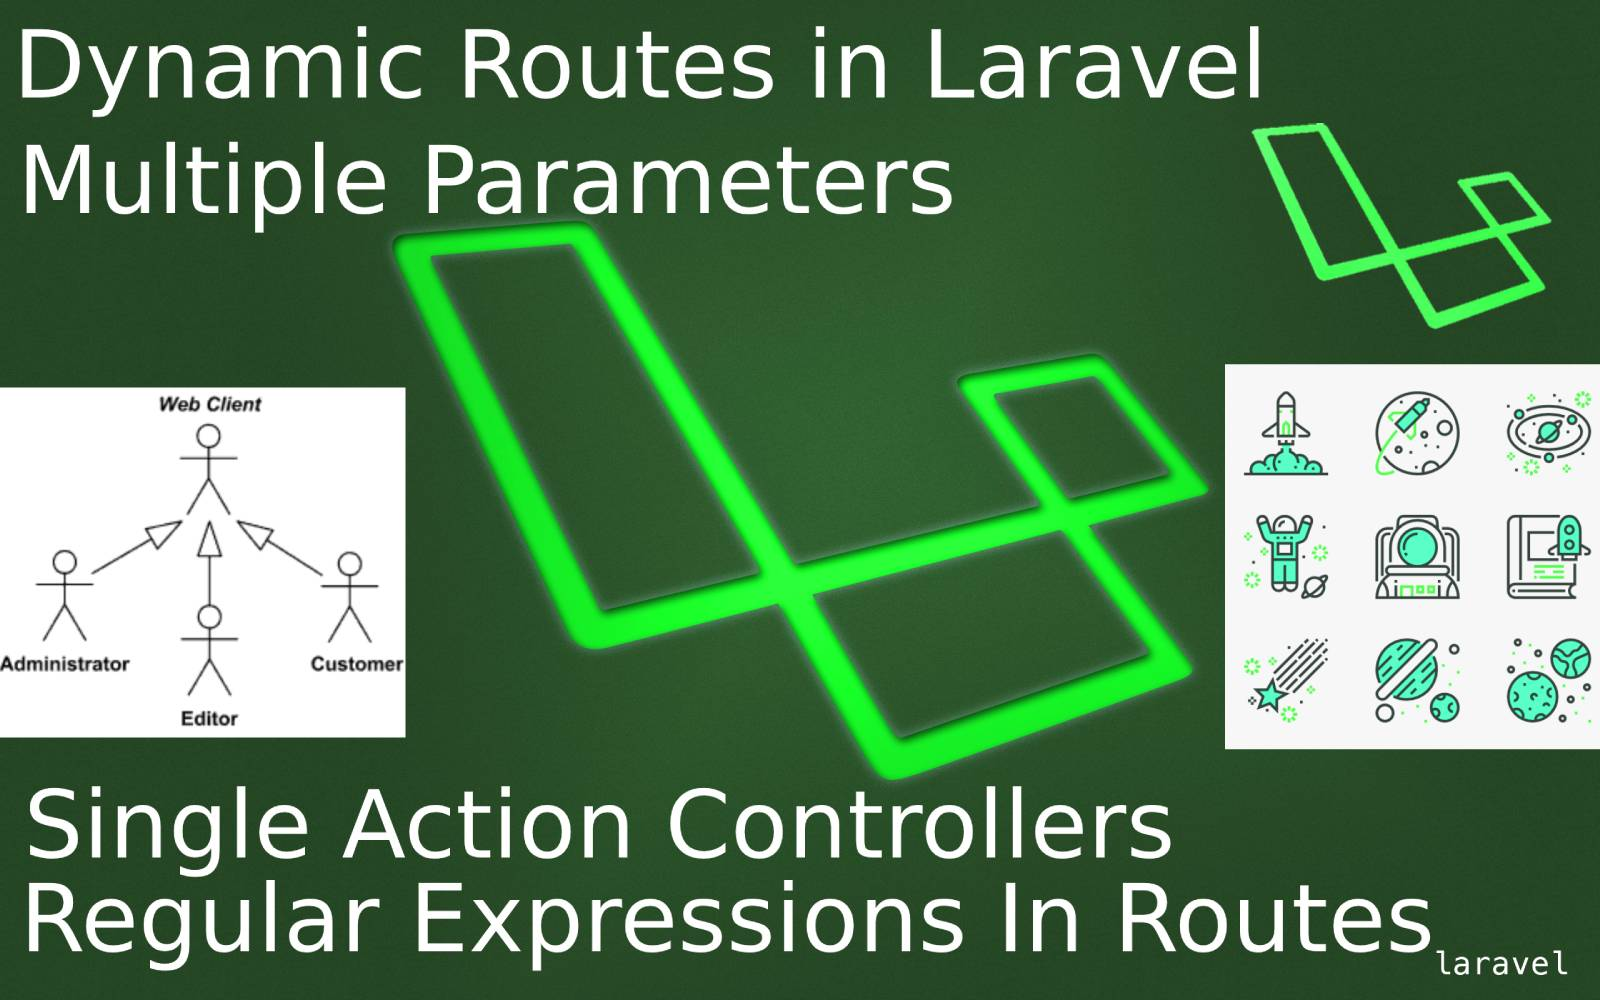 How to create multiple parameters dynamic routes in laravel?